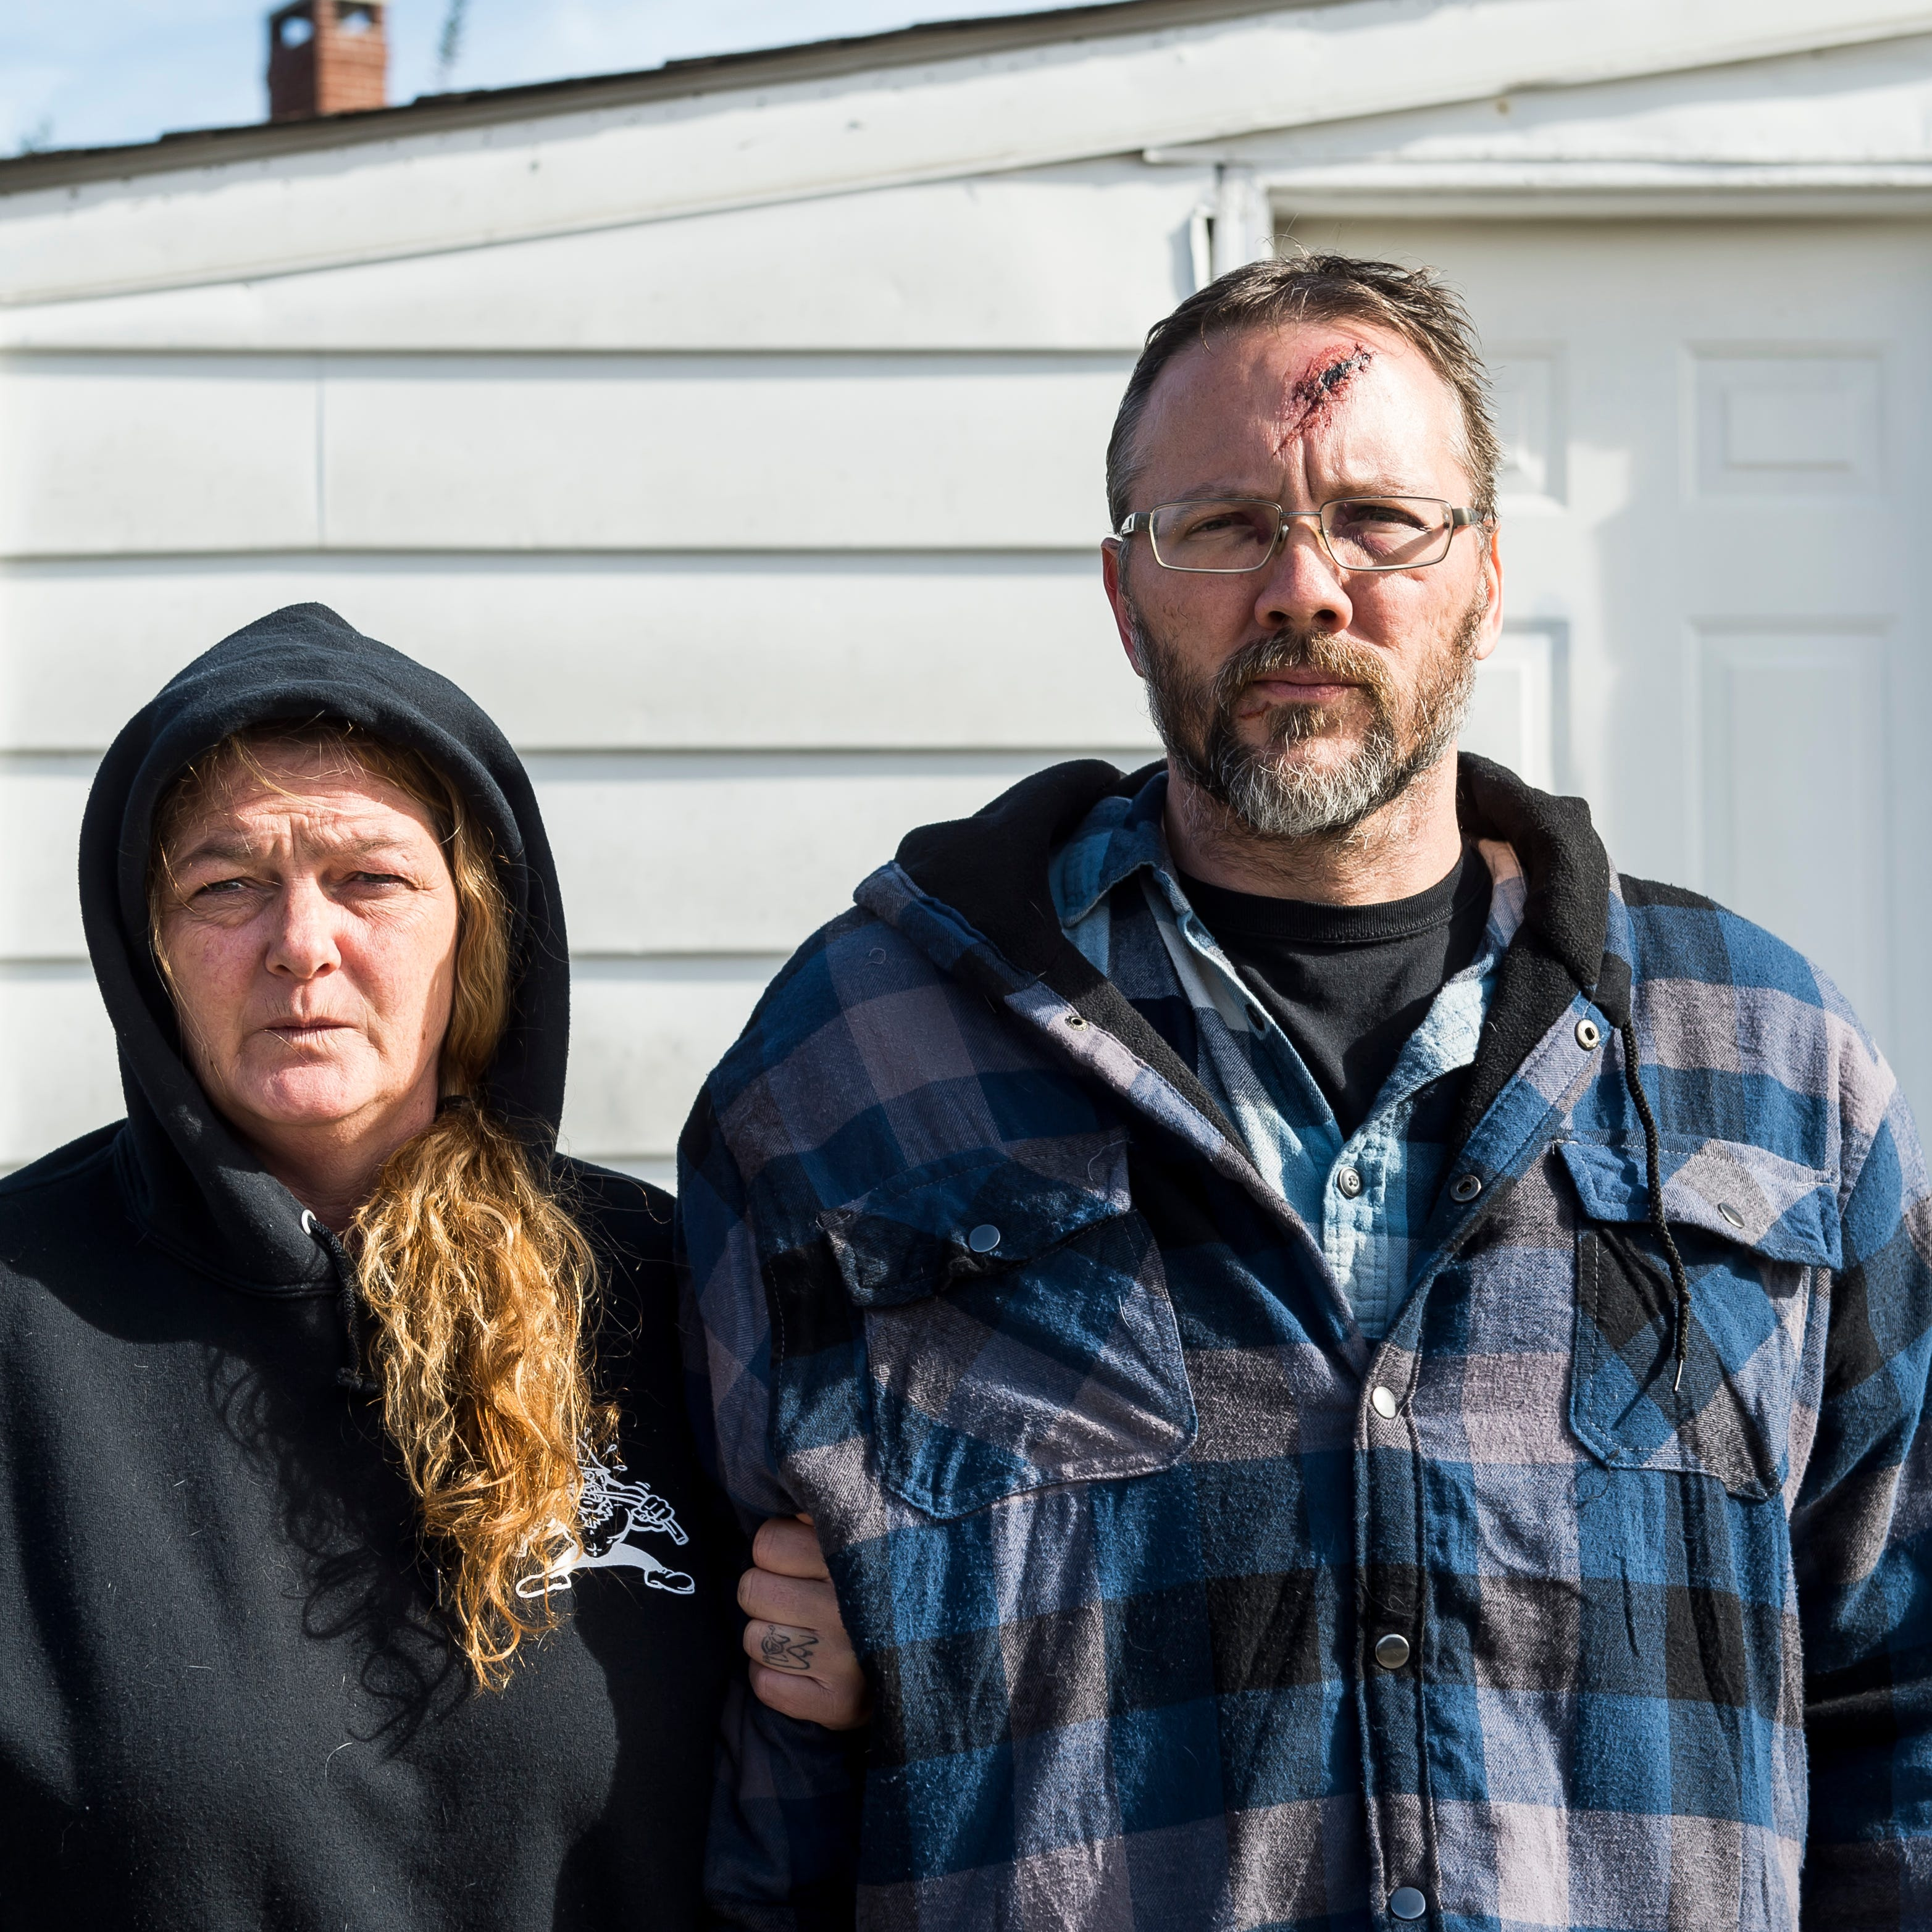 Joey and Aric Maczis stand outside their Littlestown Borough home on Wednesday. The Maczis, along with a friend, were attacked in their home by two individuals early Monday morning. Aric was hit with a meat cleaver and suffered a cracked skull and cracked sinus.